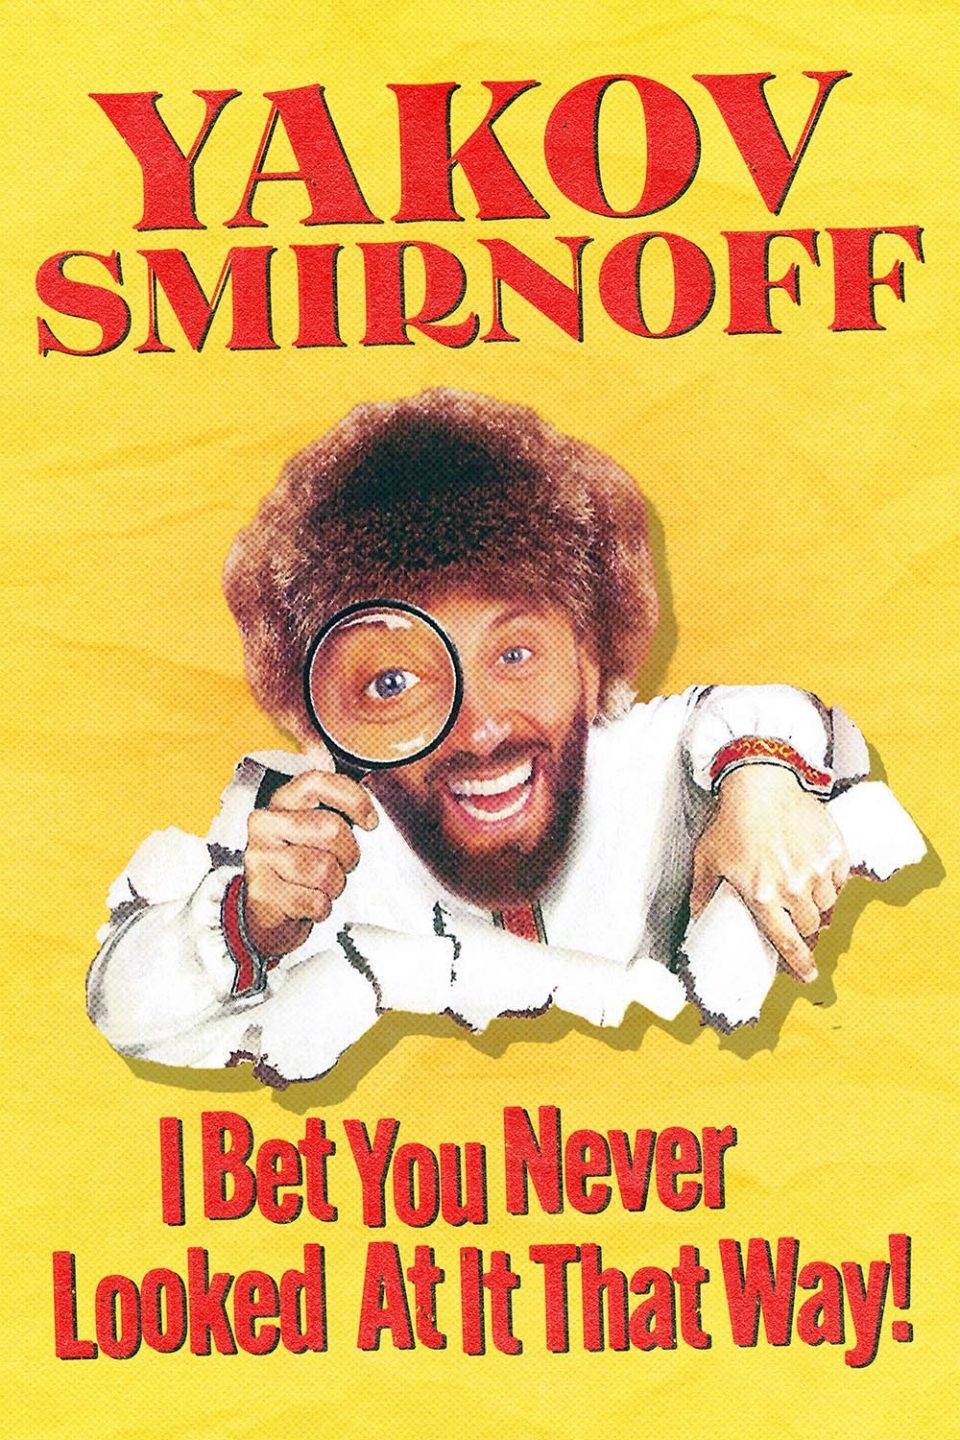 Yakov Smirnoff: I Bet You Never Looked At It That Way!